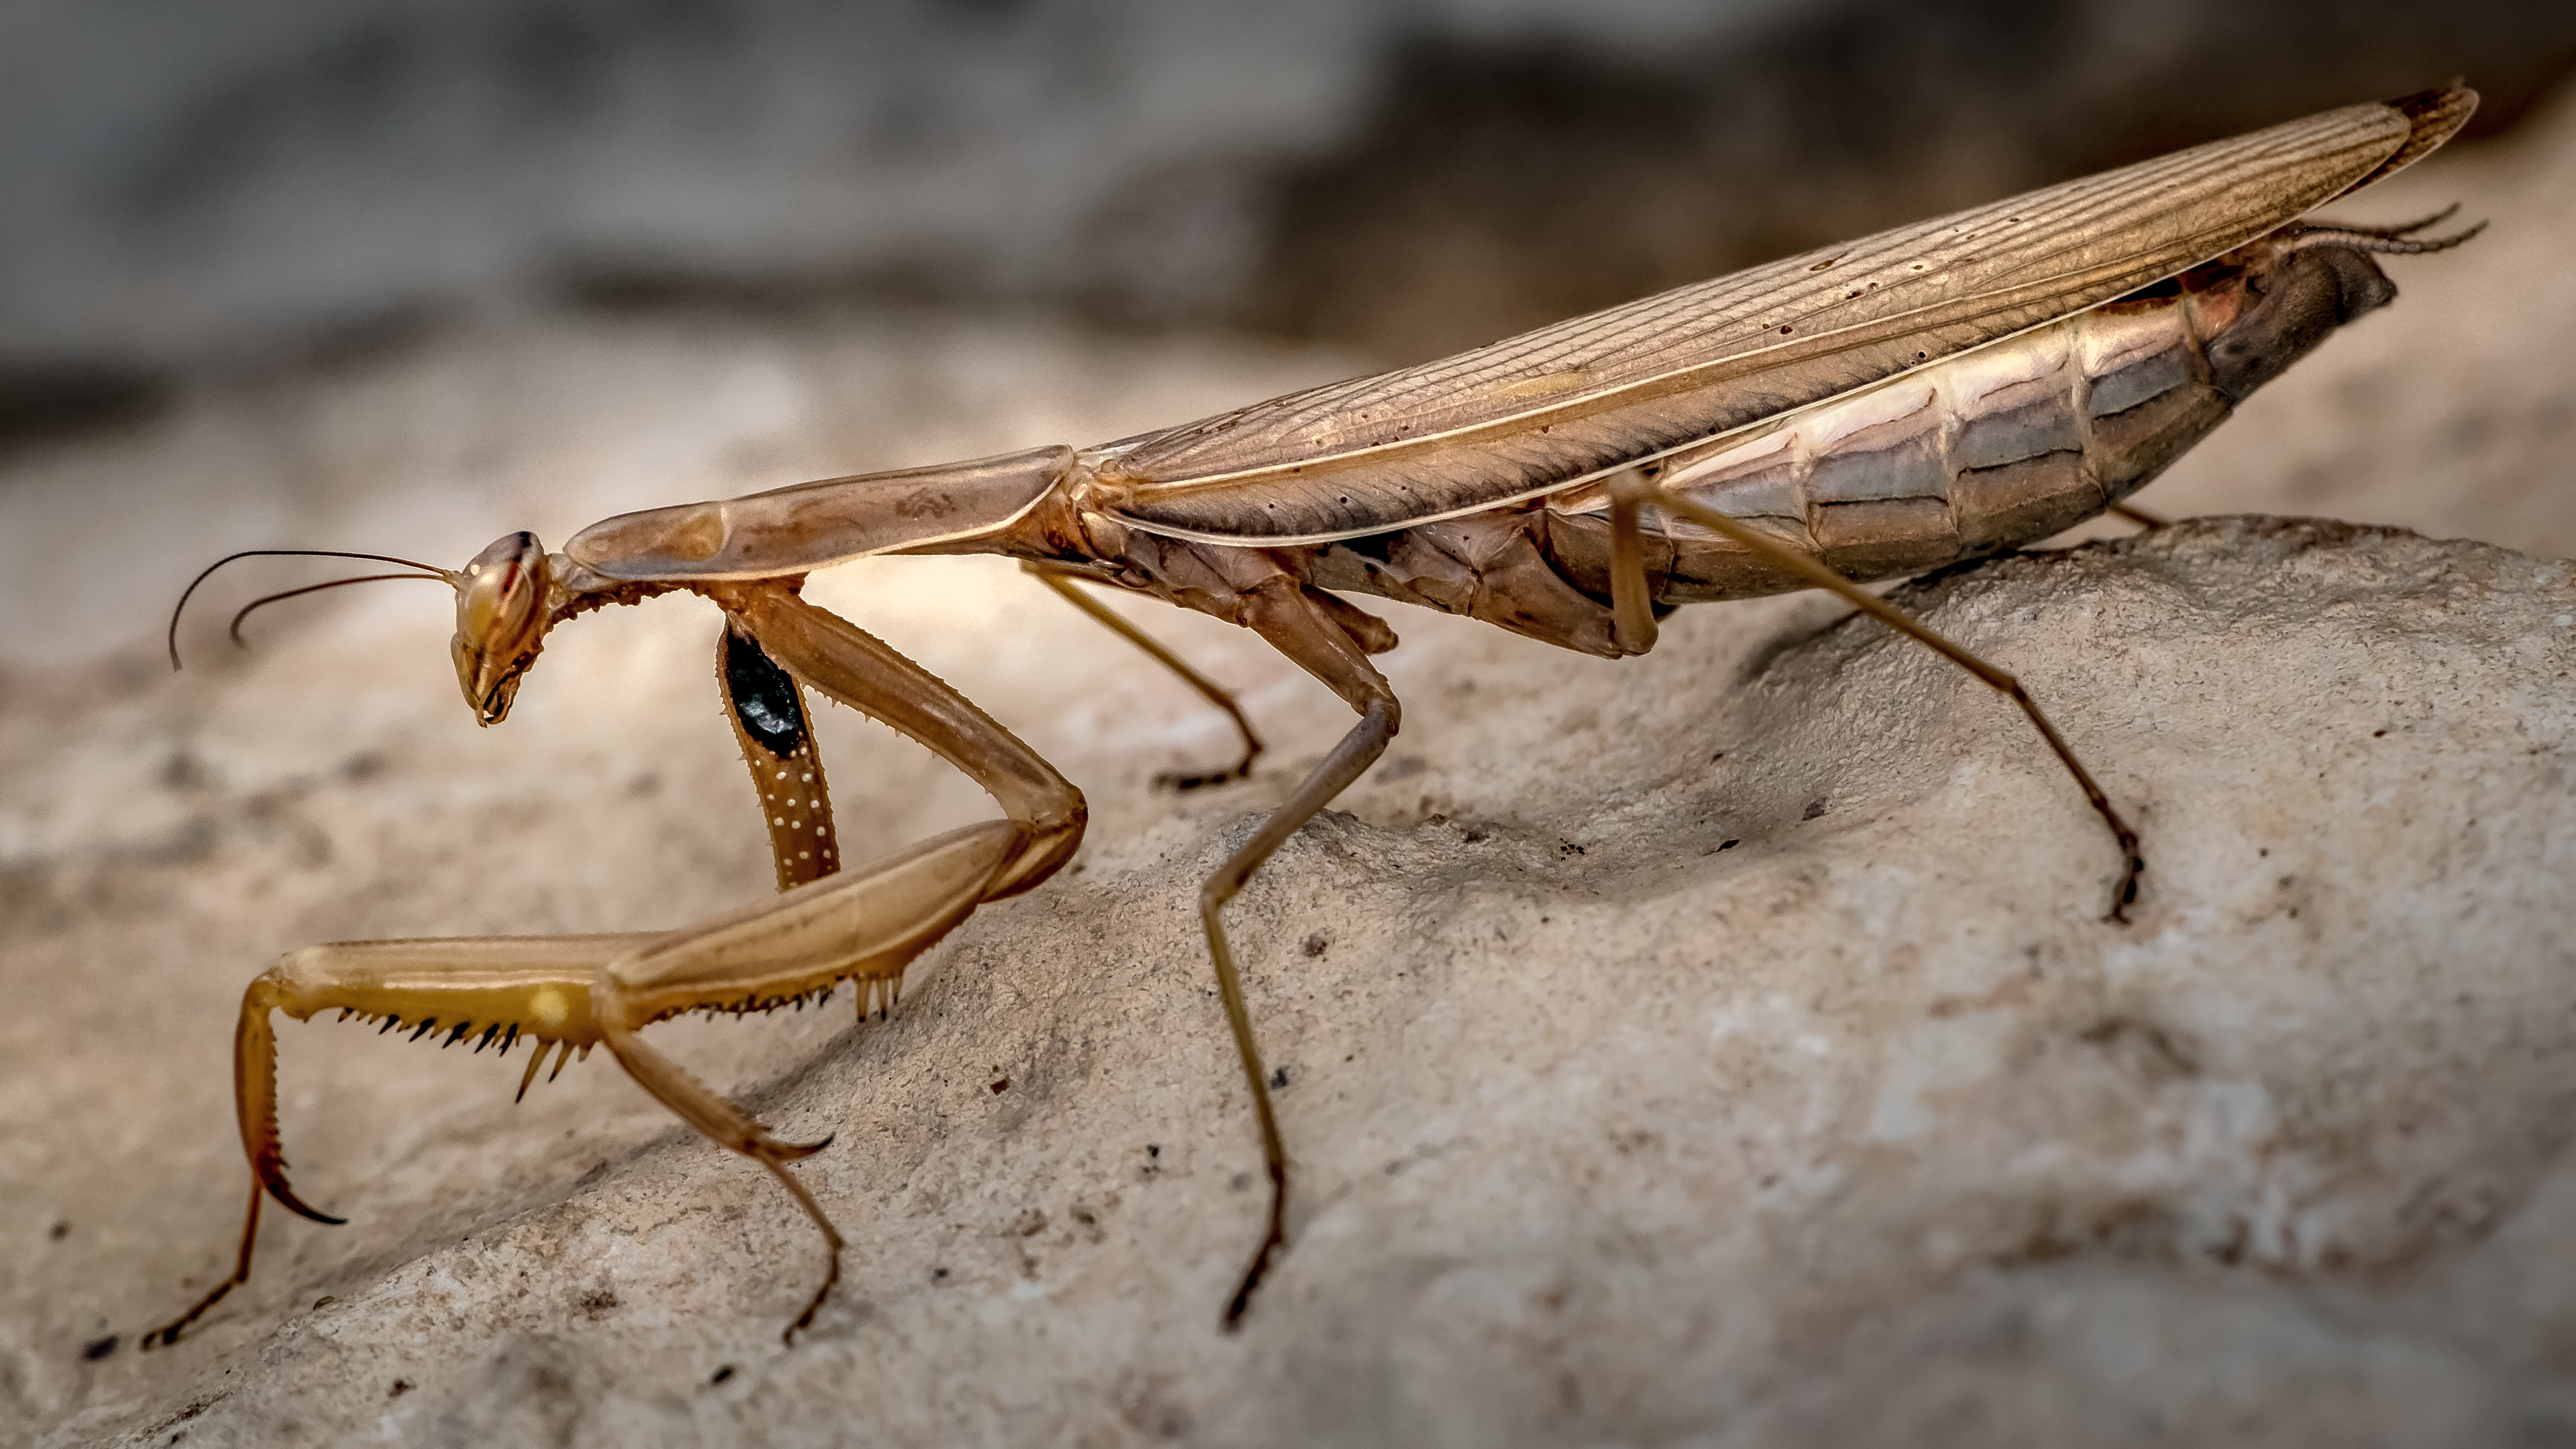 General anatomy of insects | Welcome Wildlife